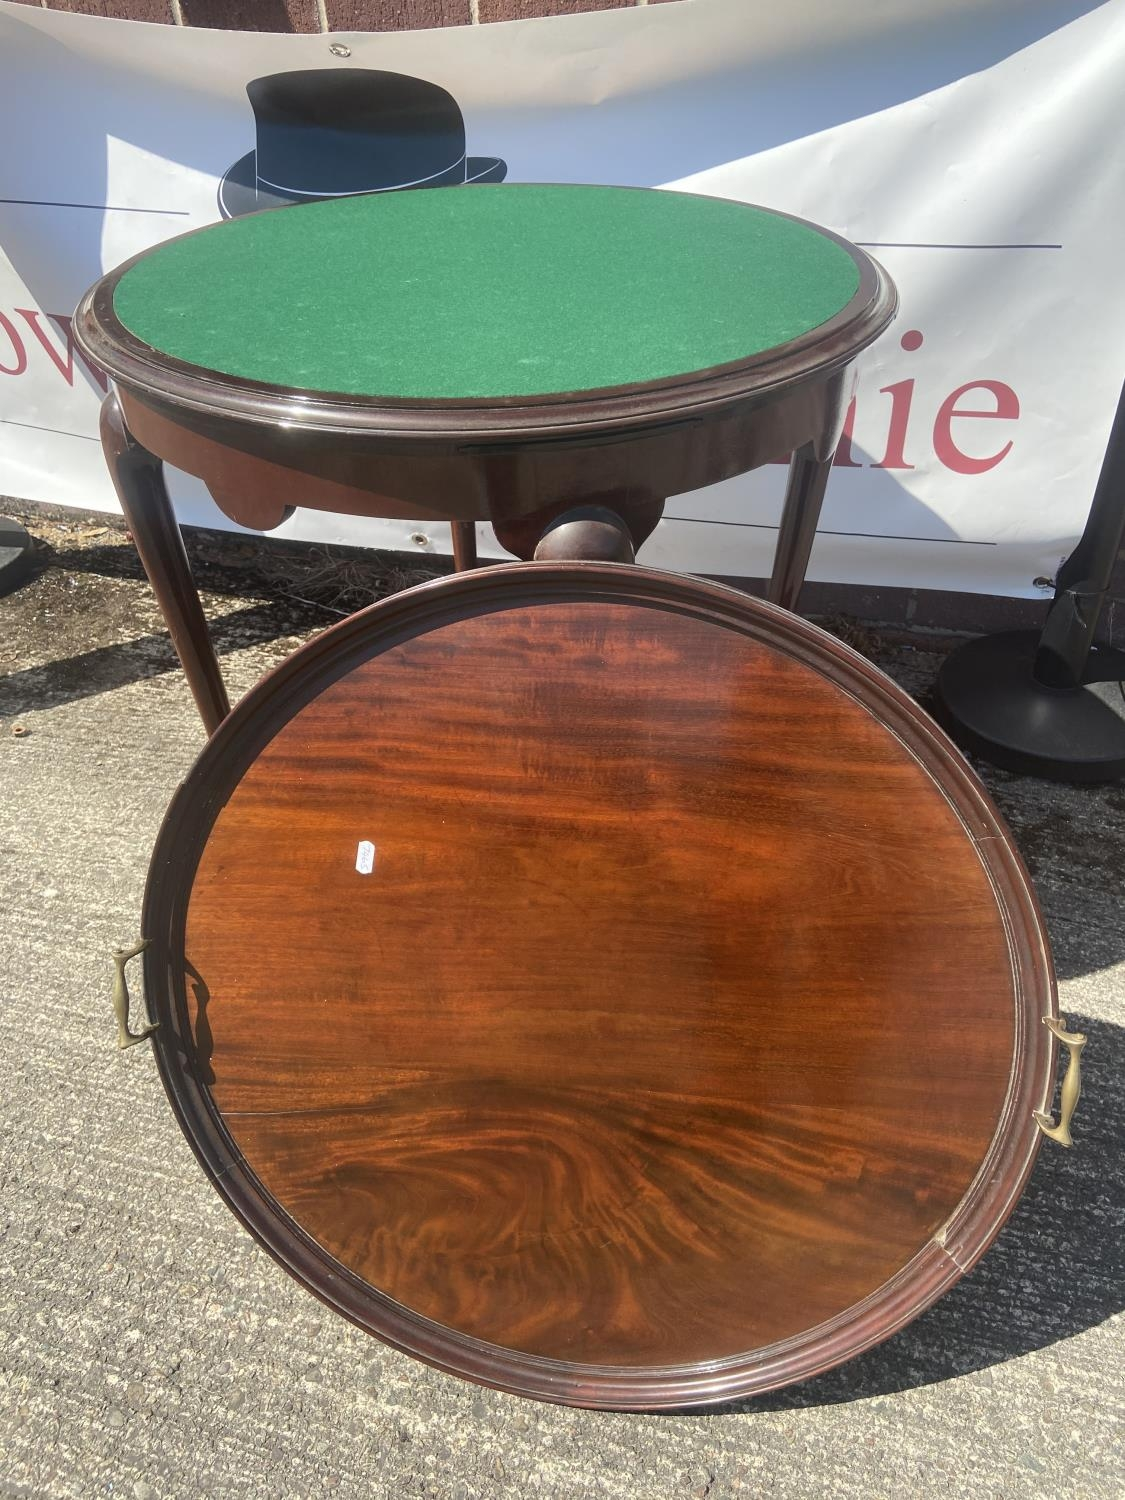 Antique card table/serving table [75x67cm] - Image 2 of 4